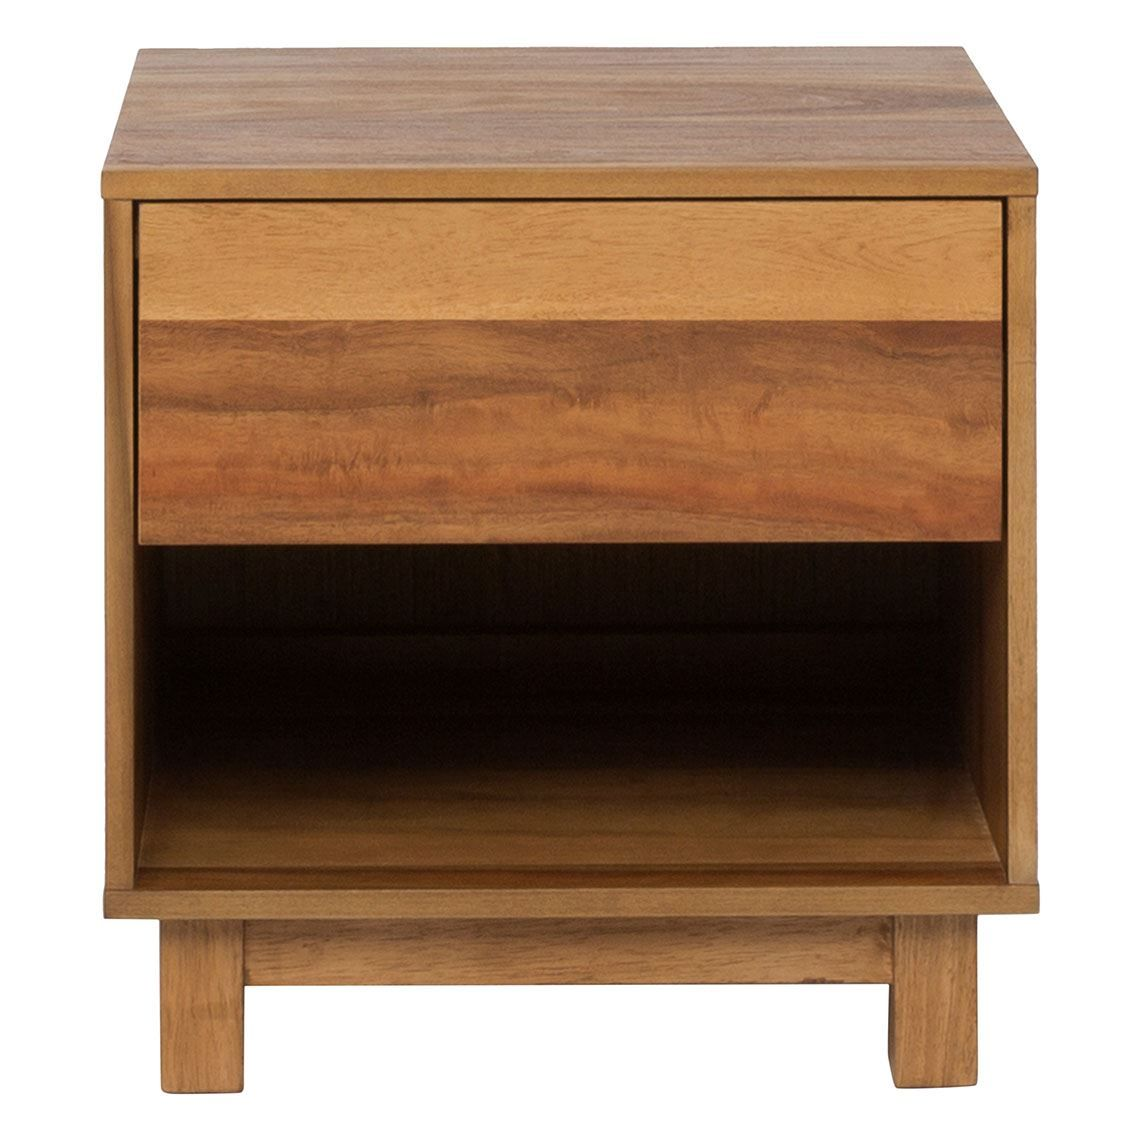 Reno 1 Drawer Bedside Table, Natural | Products in 2019 ...